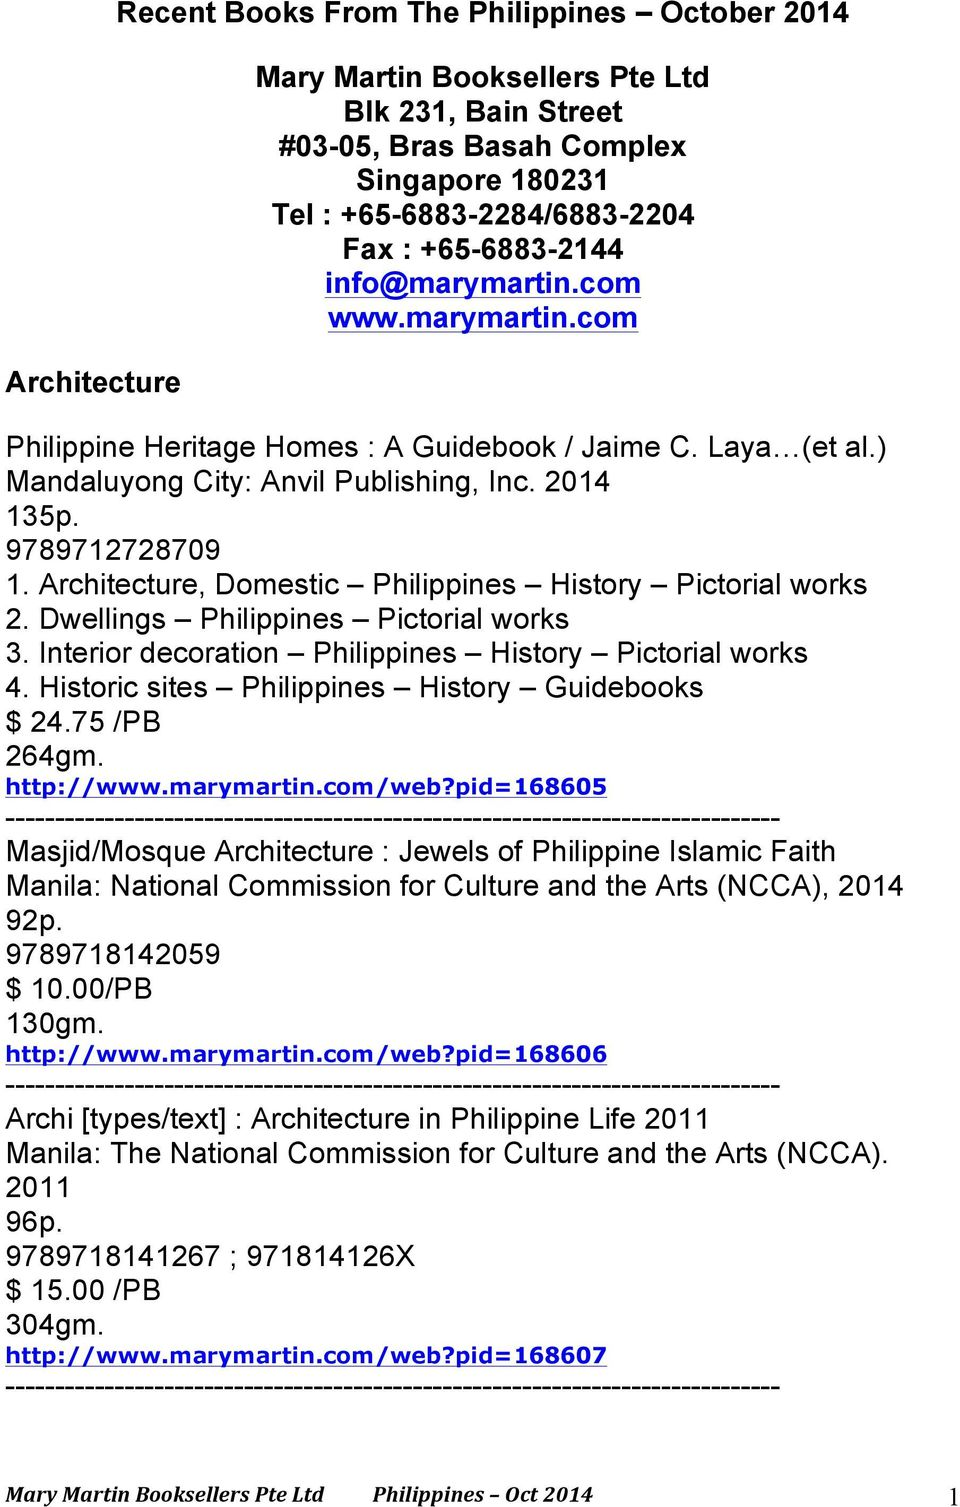 Recent Books From The Philippines October PDF